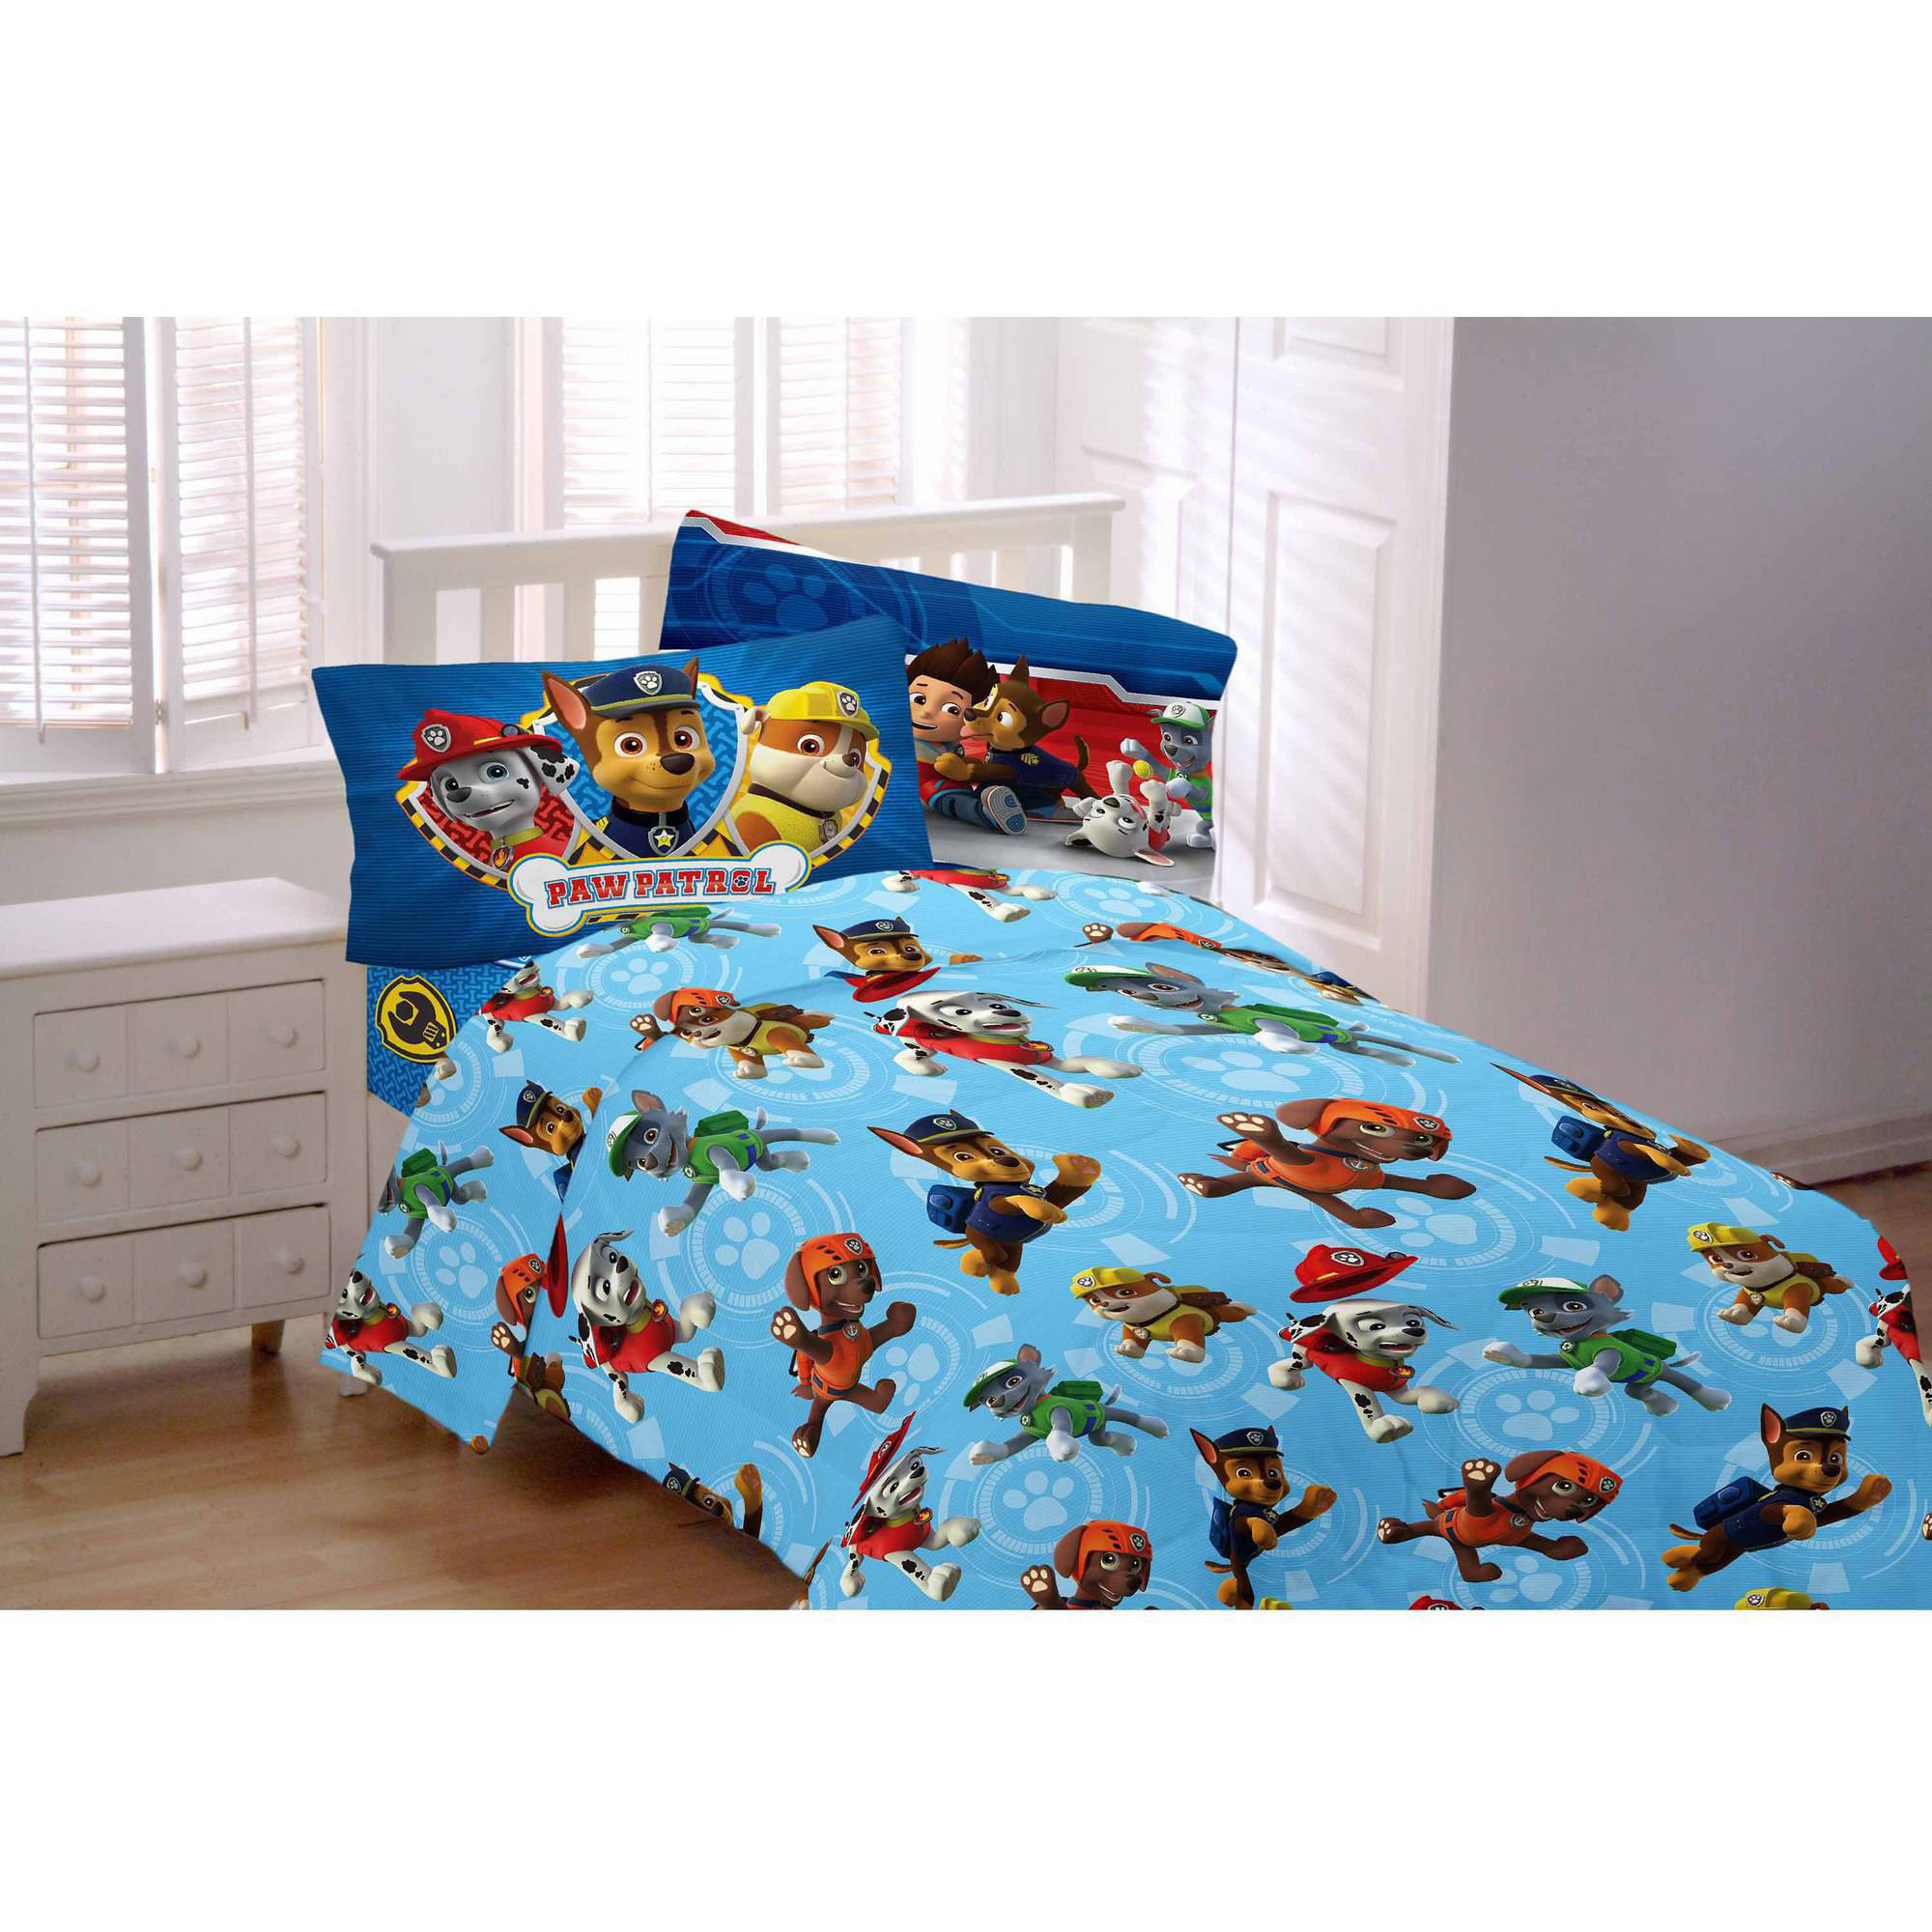 paw patrol 3-piece flannel twin sheet set - walmart